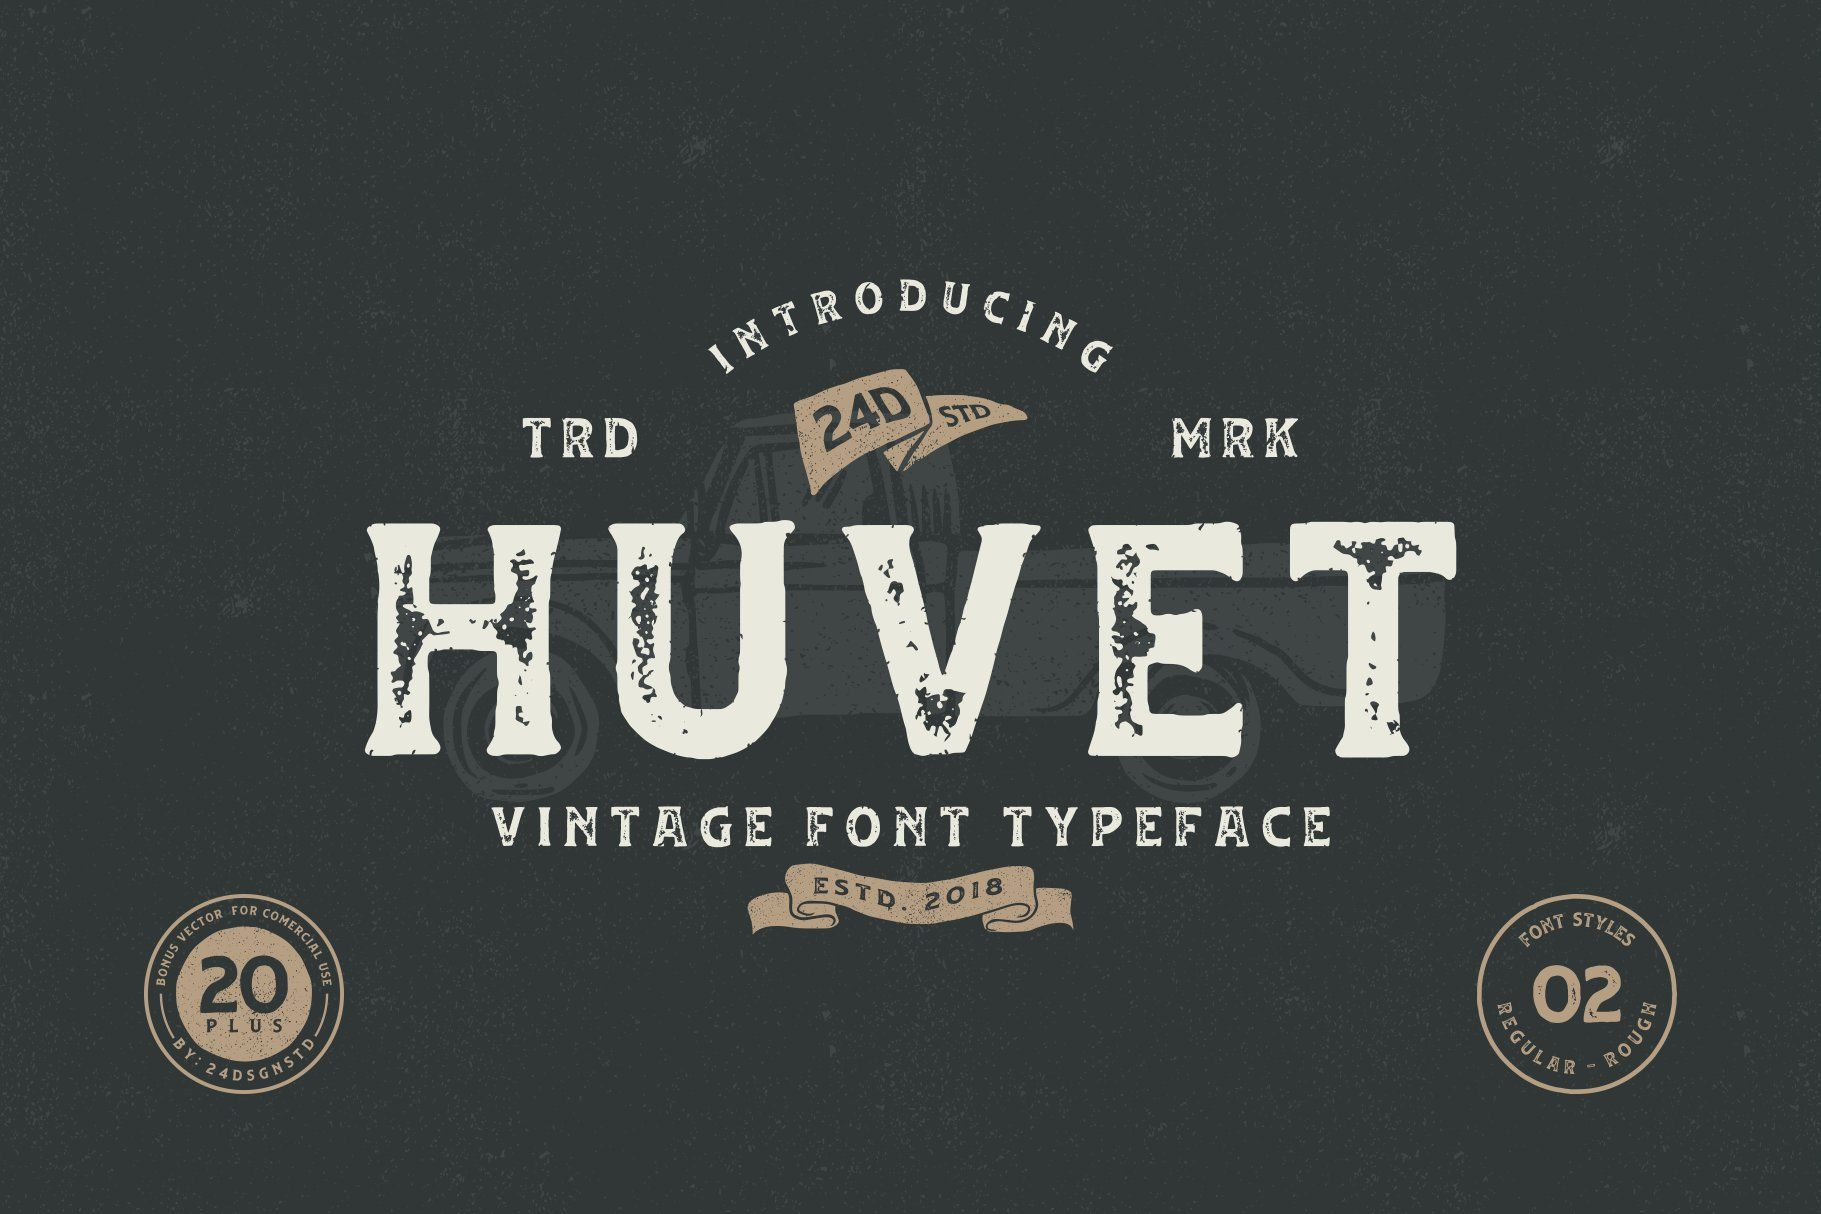 Huvet Font is a striking display font. Its masculine style